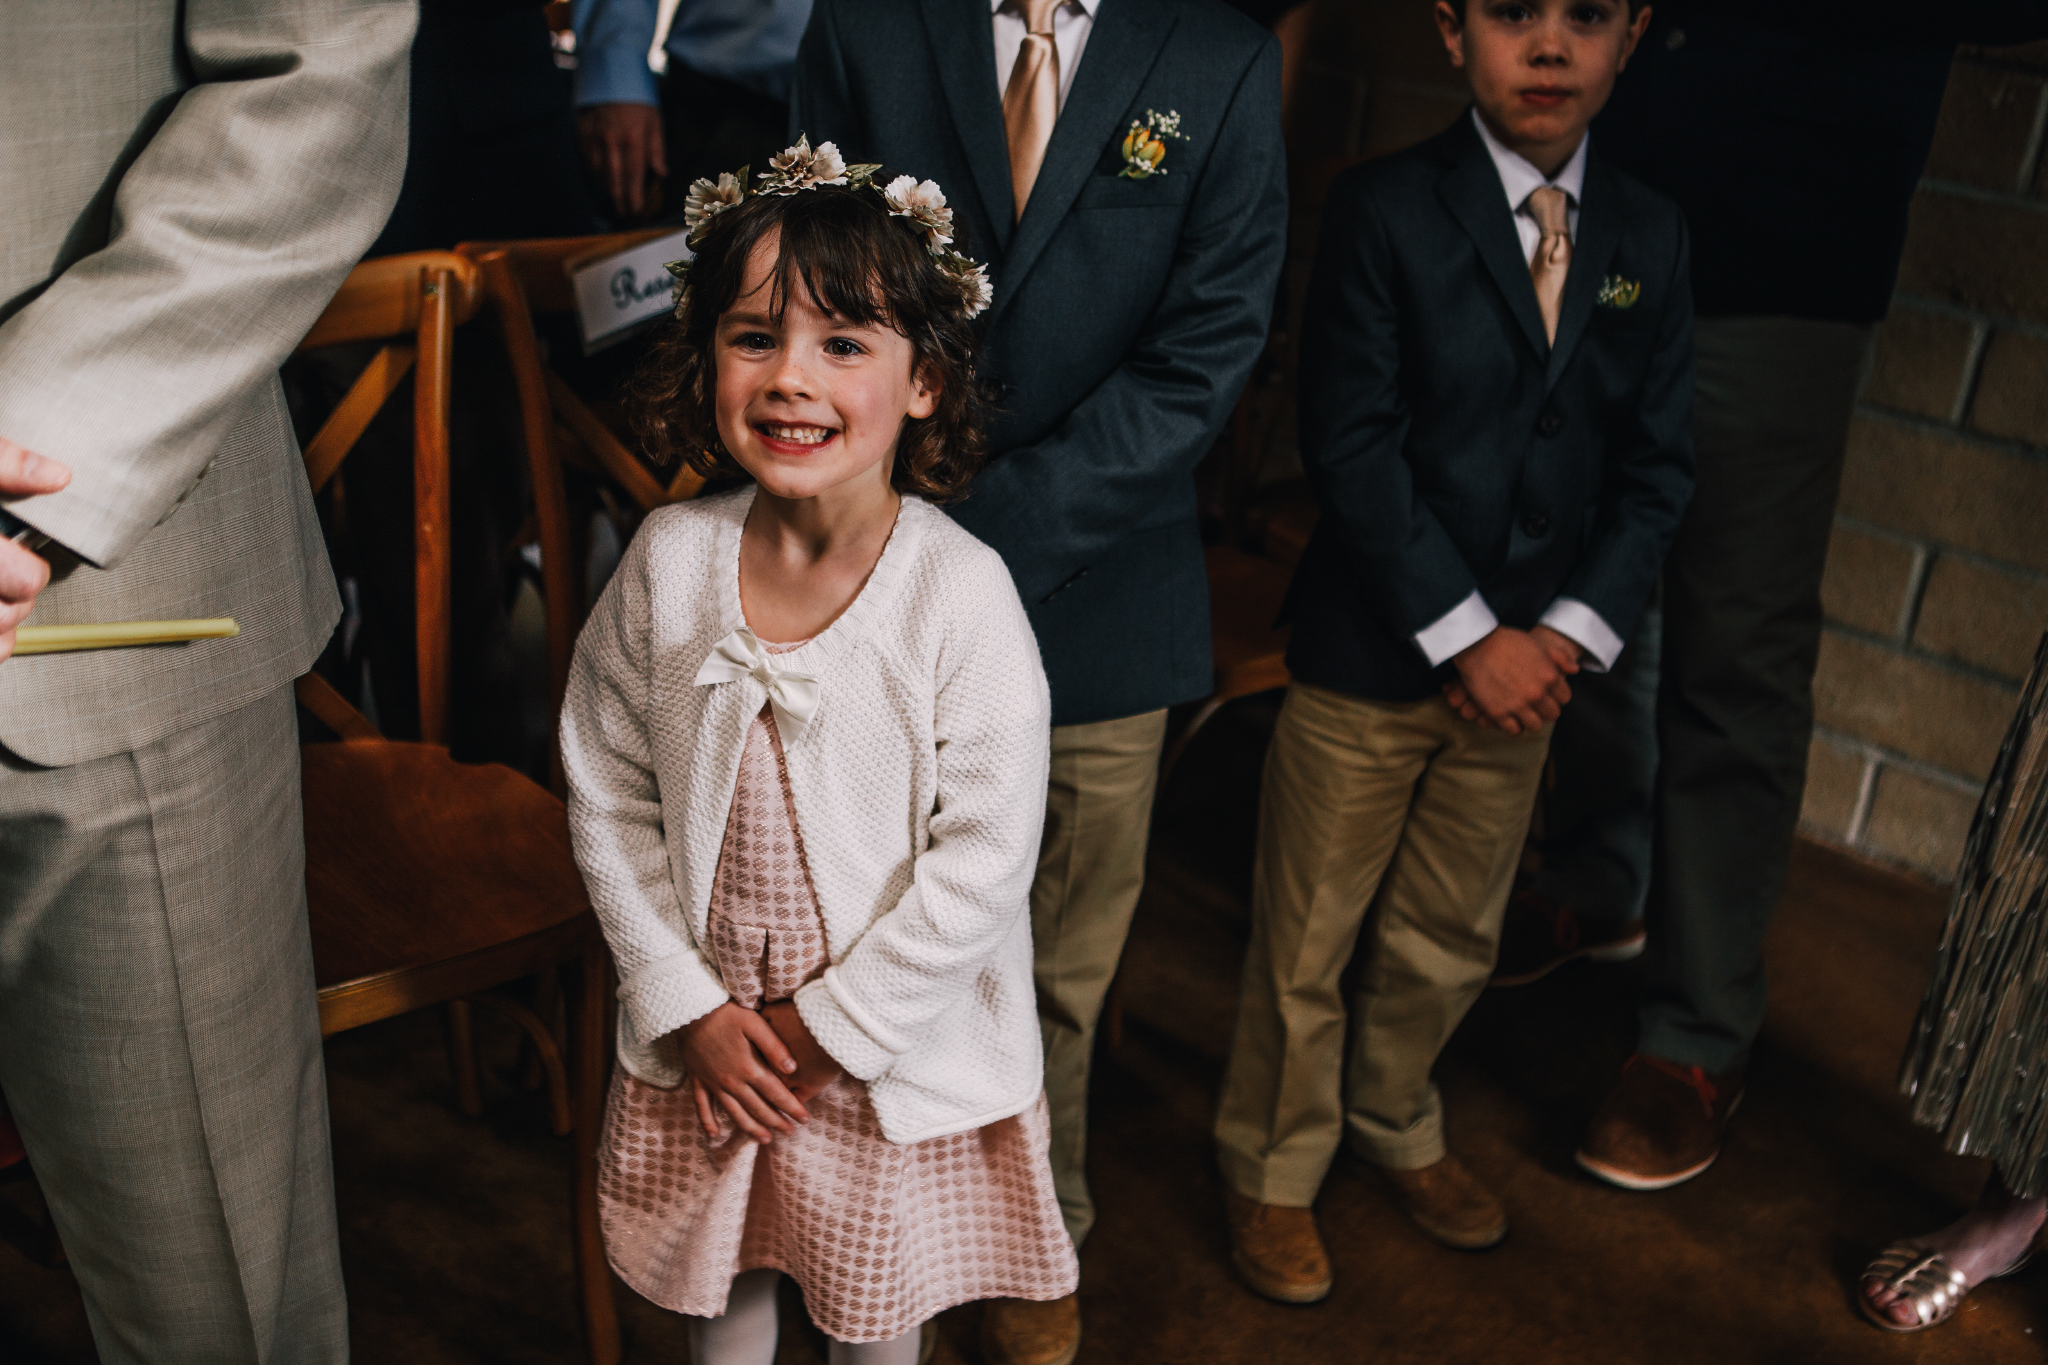 san diego wedding   photographer | child with flower crown smiling in crowd